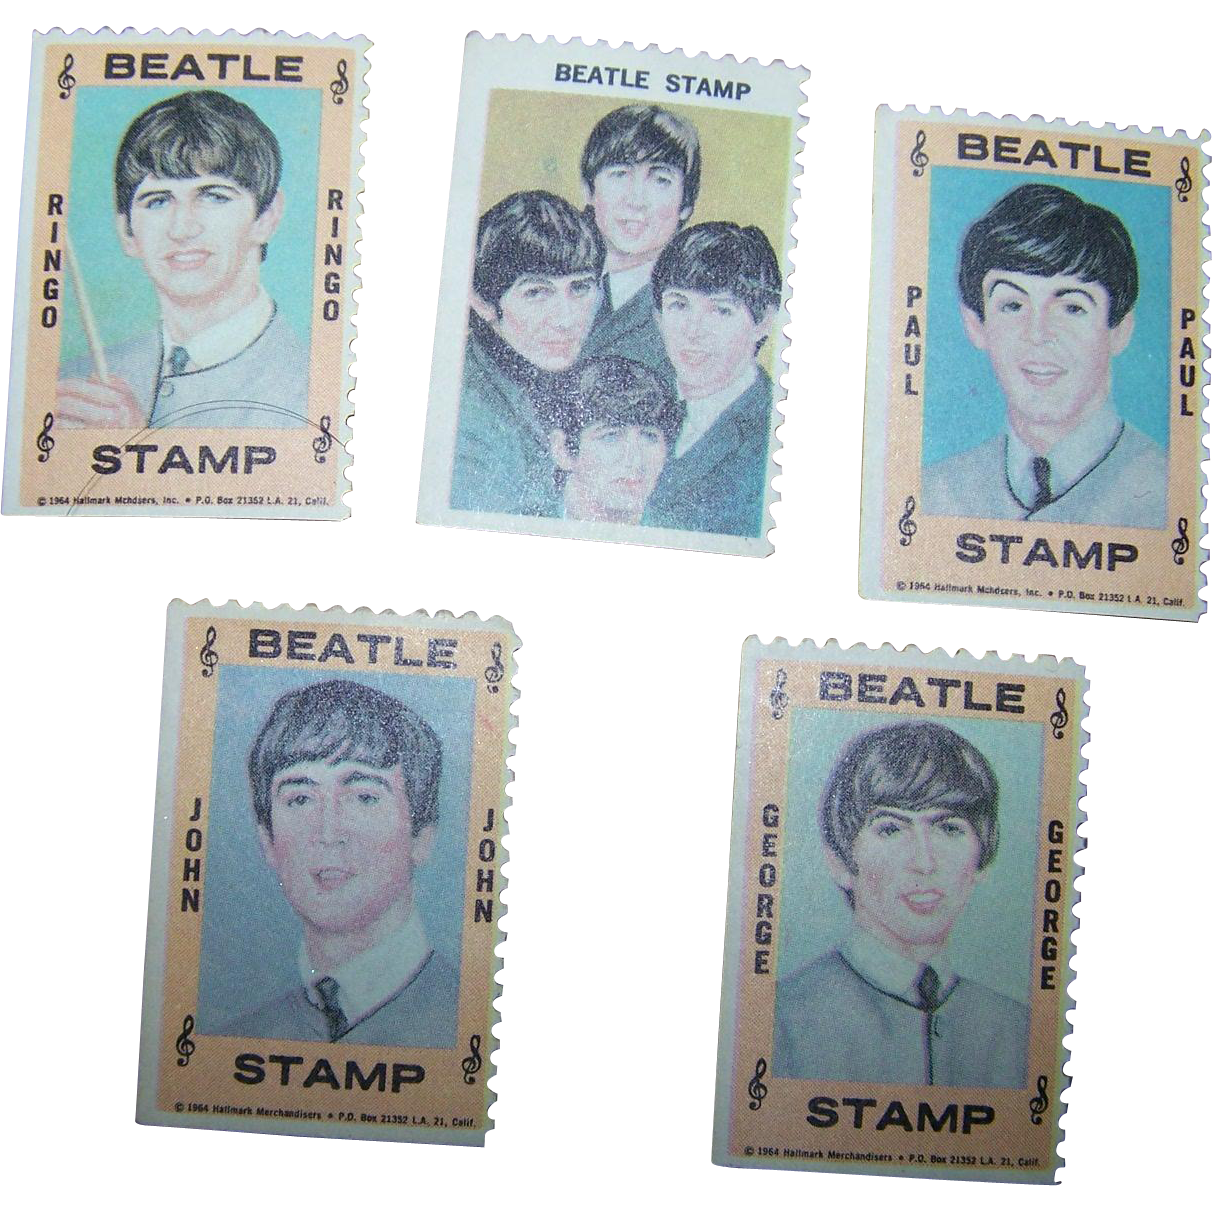 Set of 5 1964 Hallmark Beatles Stamp Set - Music Stamps, Ringo, Paul, John, George